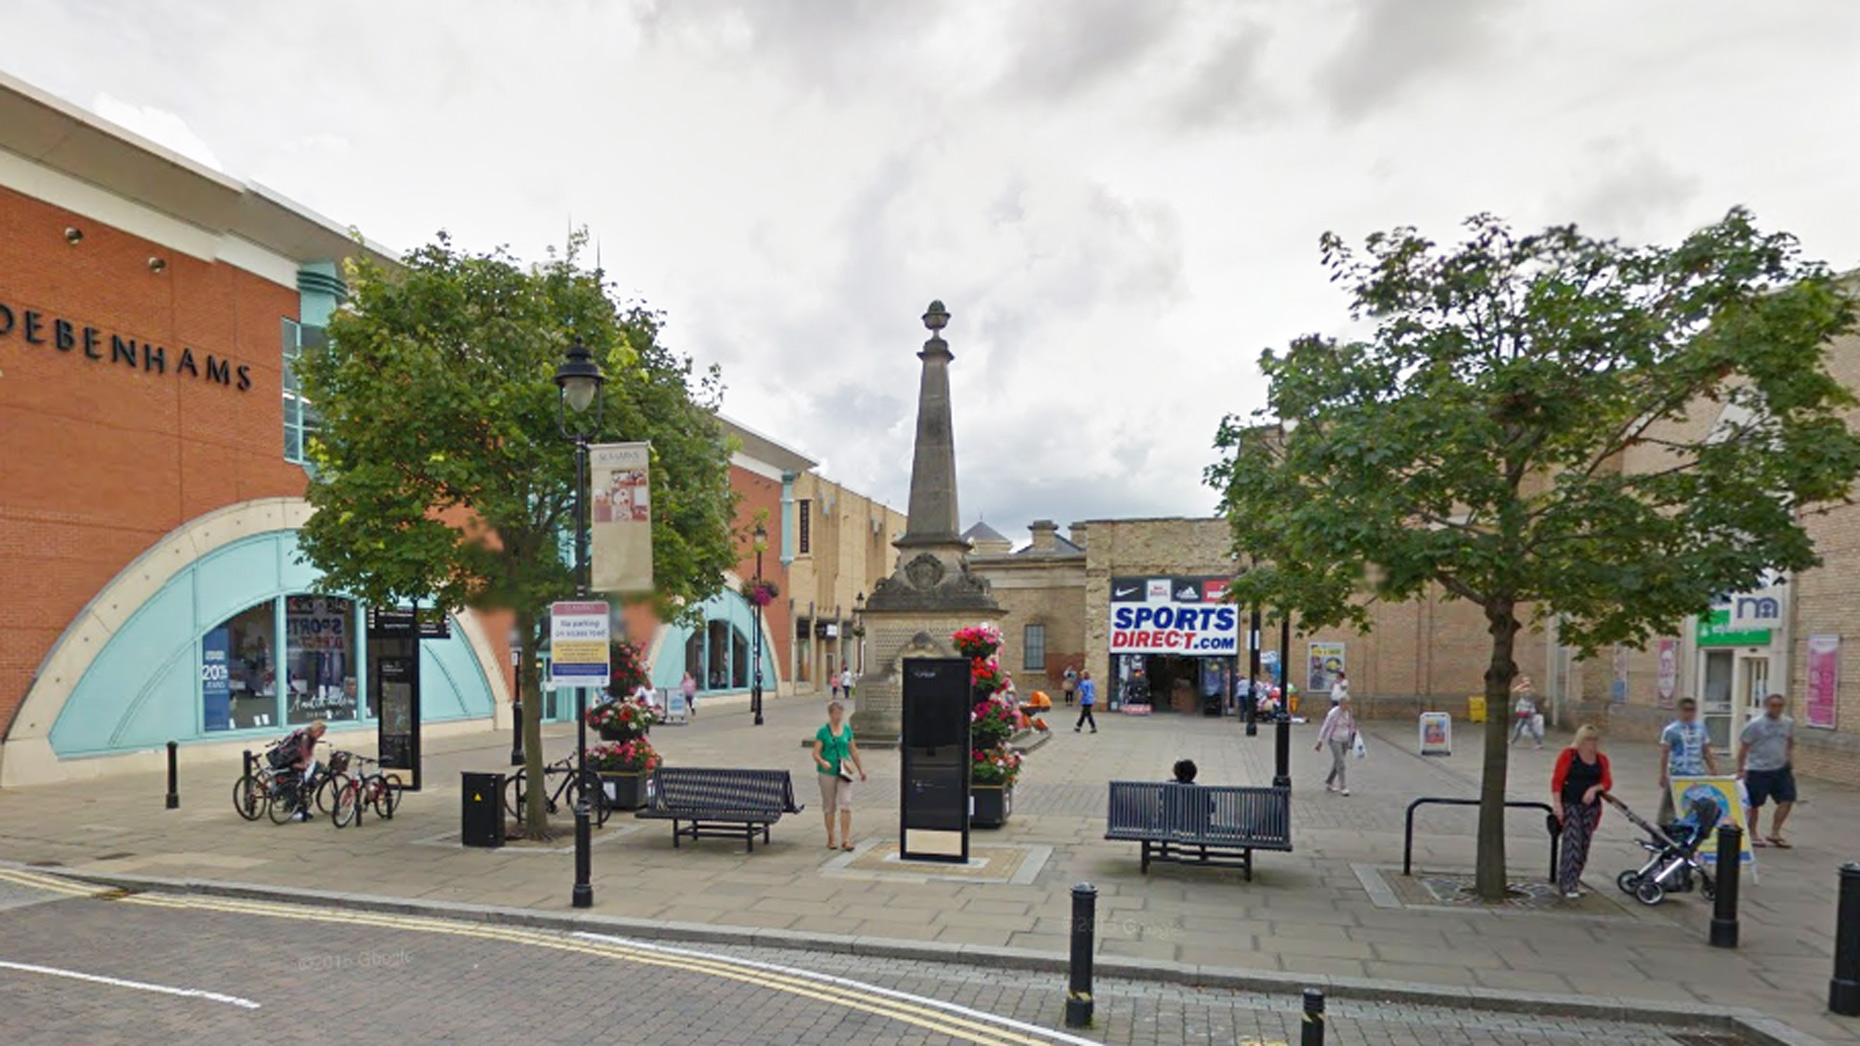 The plans would see the St Marks Shopping area redeveloped.